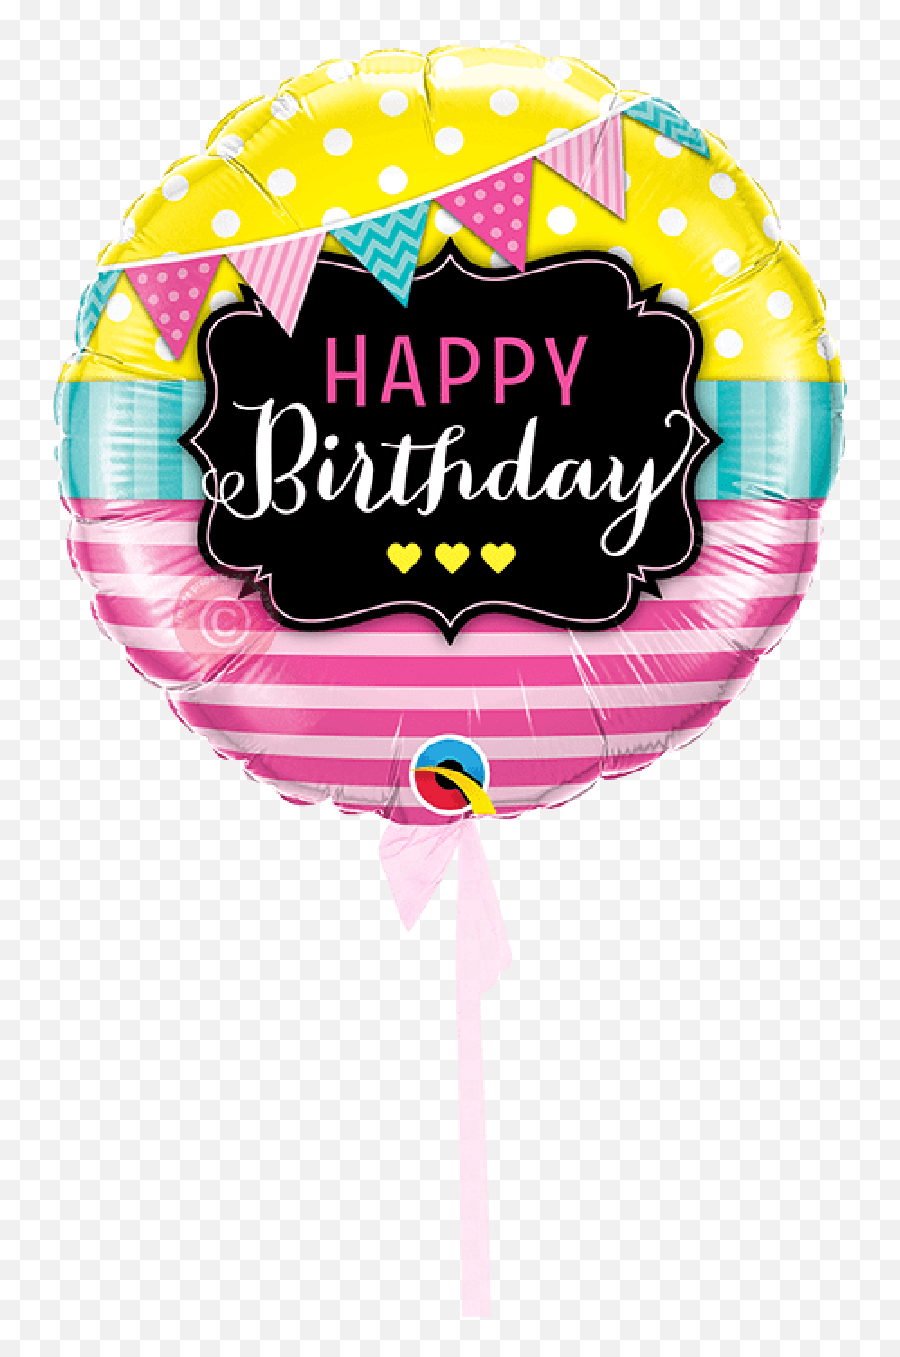 Pink Stripes Balloons Delivered Inflated - Happy Birthday Single Balloon Emoji